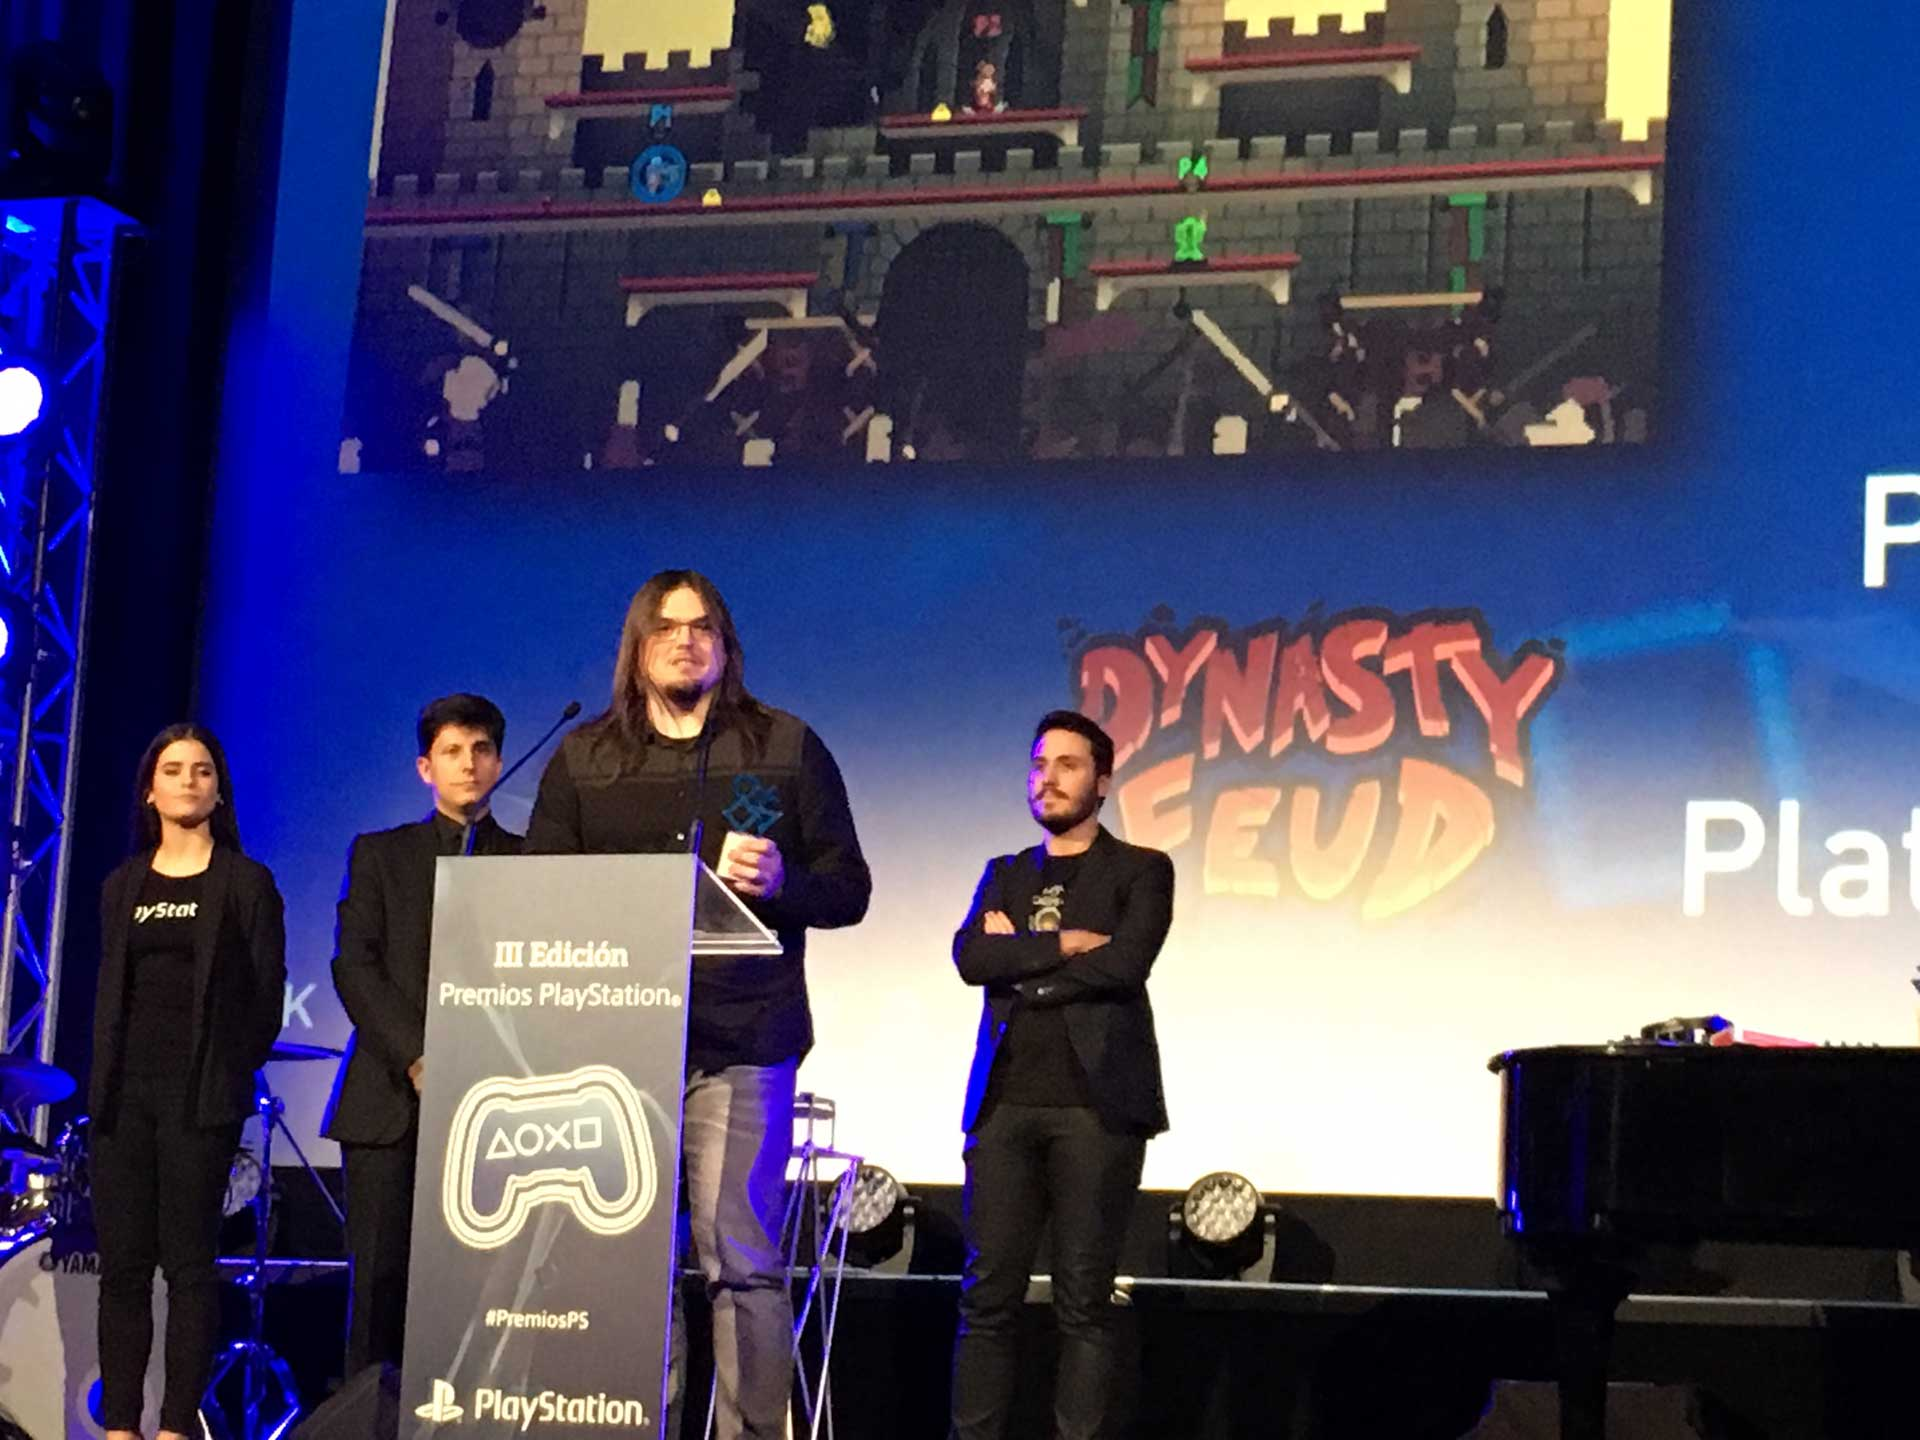 Dynasty Feud mejor uso plataformas playstation